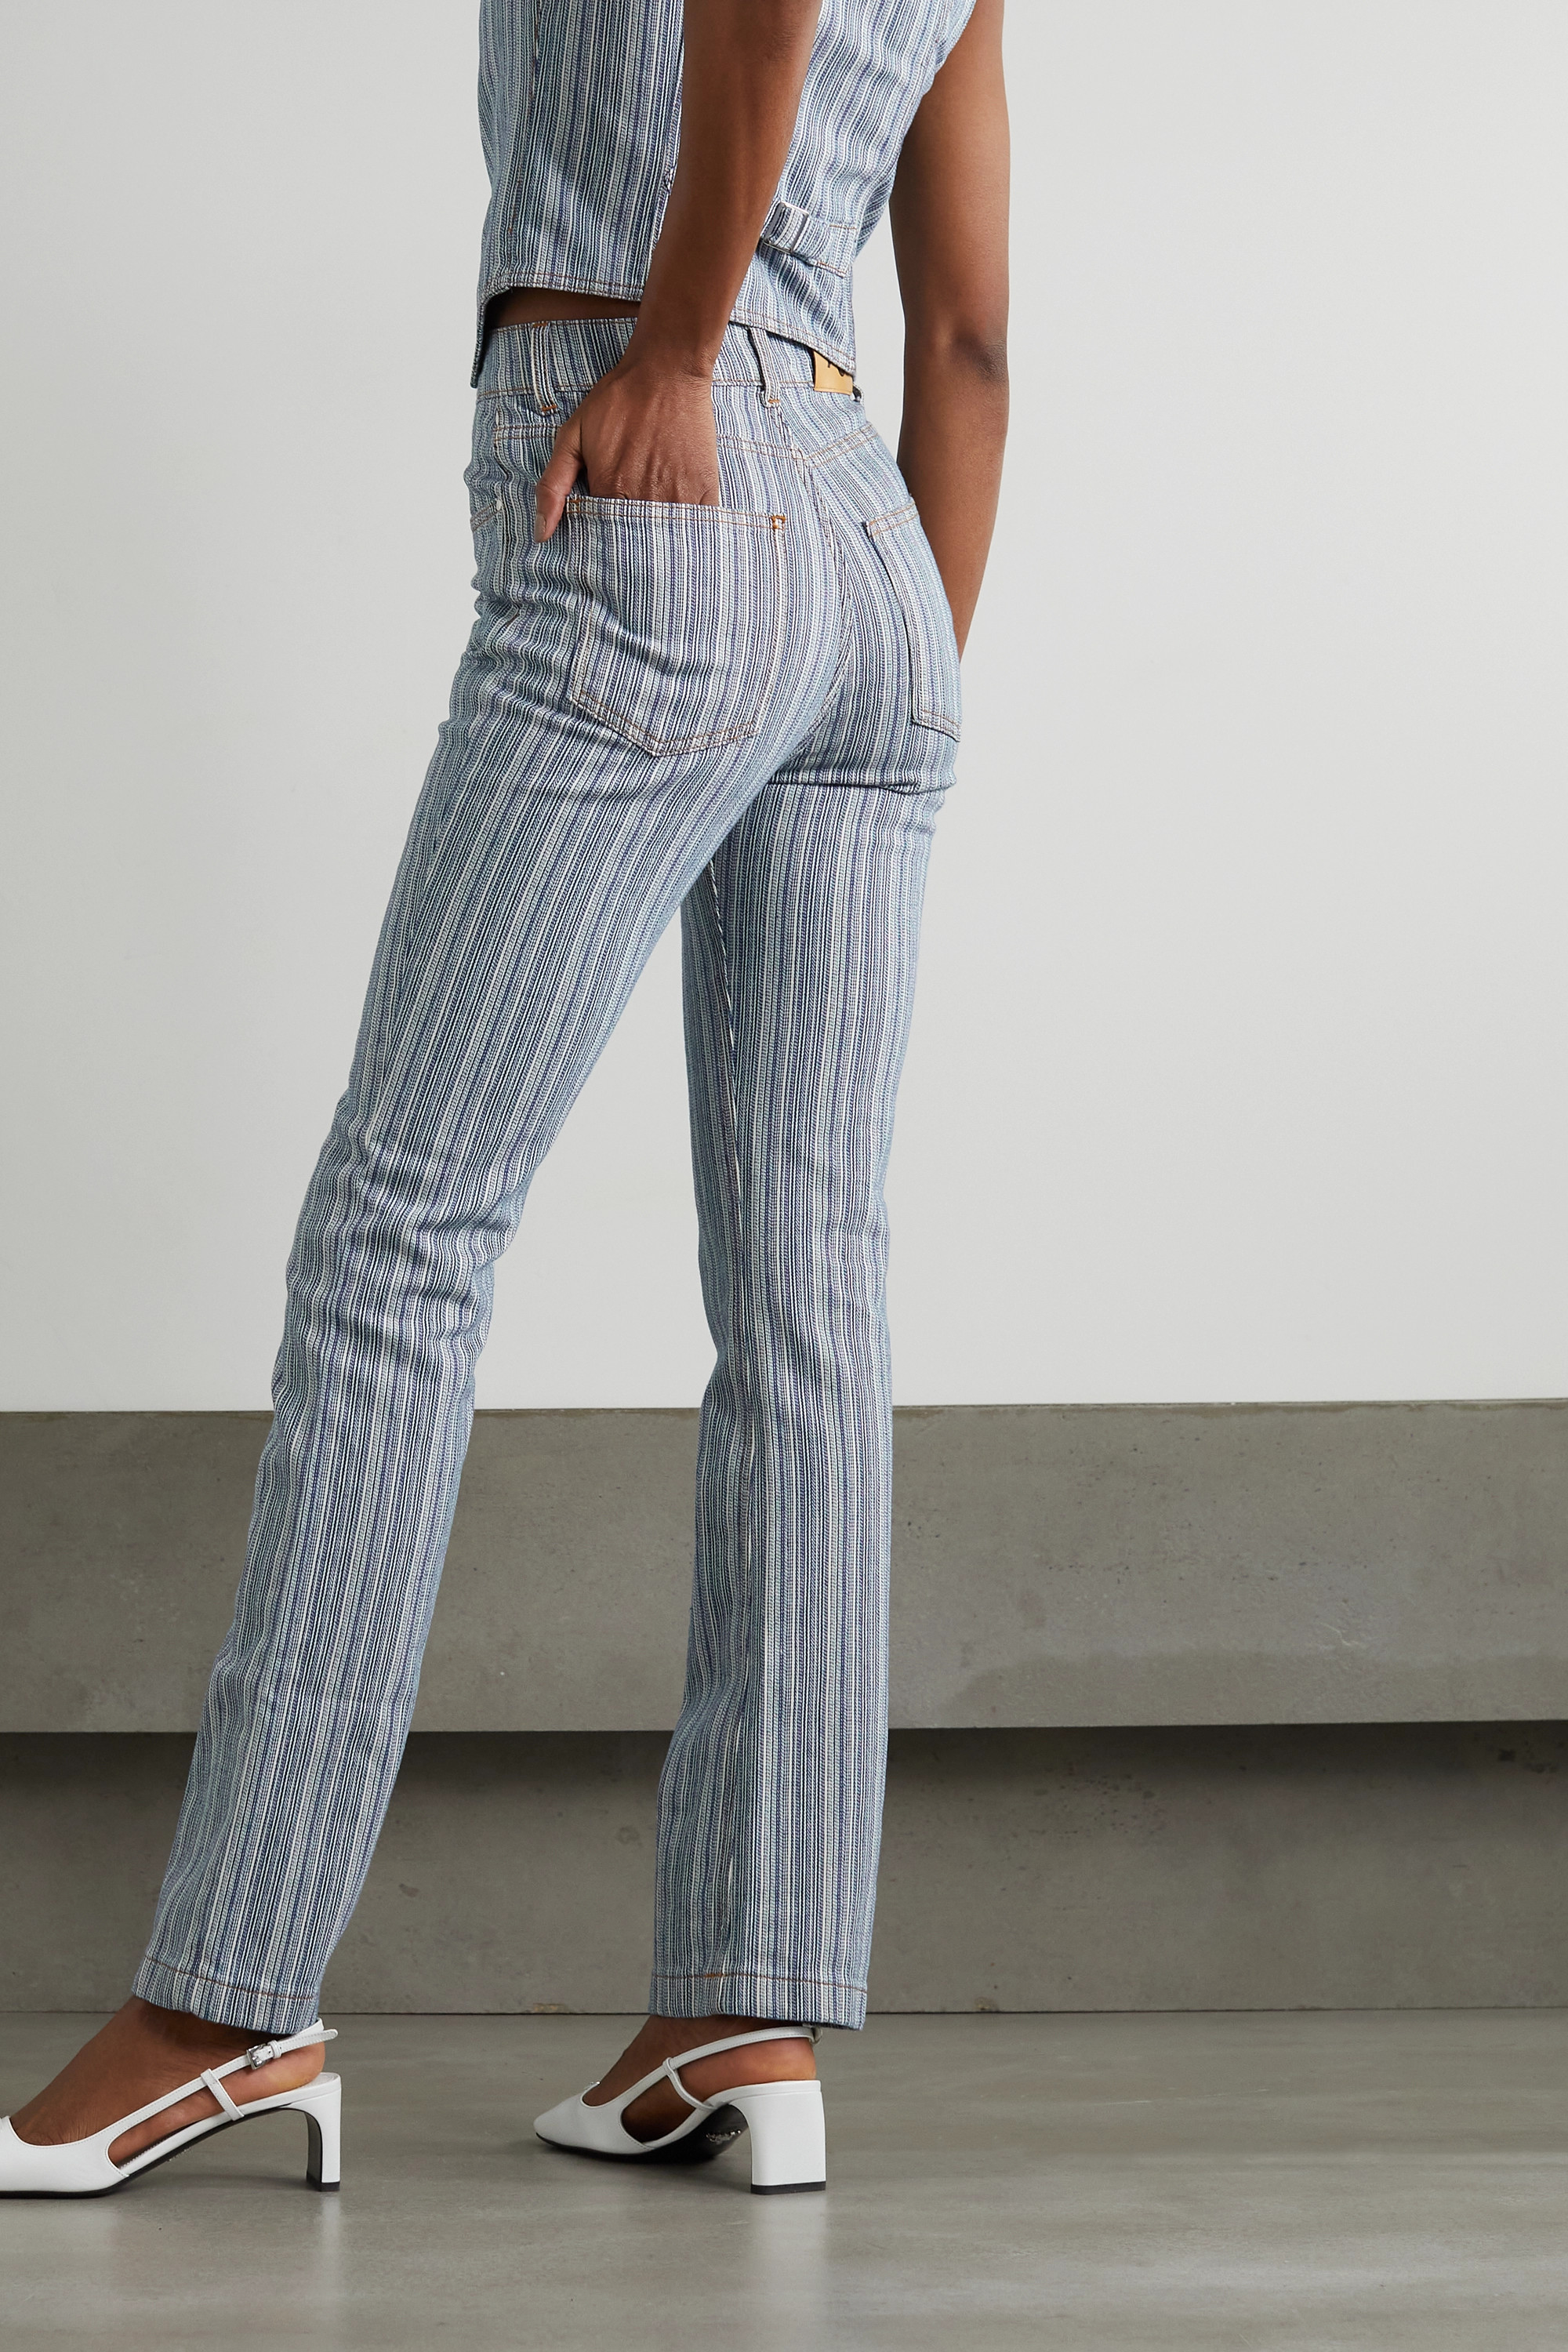 ALEXACHUNG Grady pinstriped flared jeans